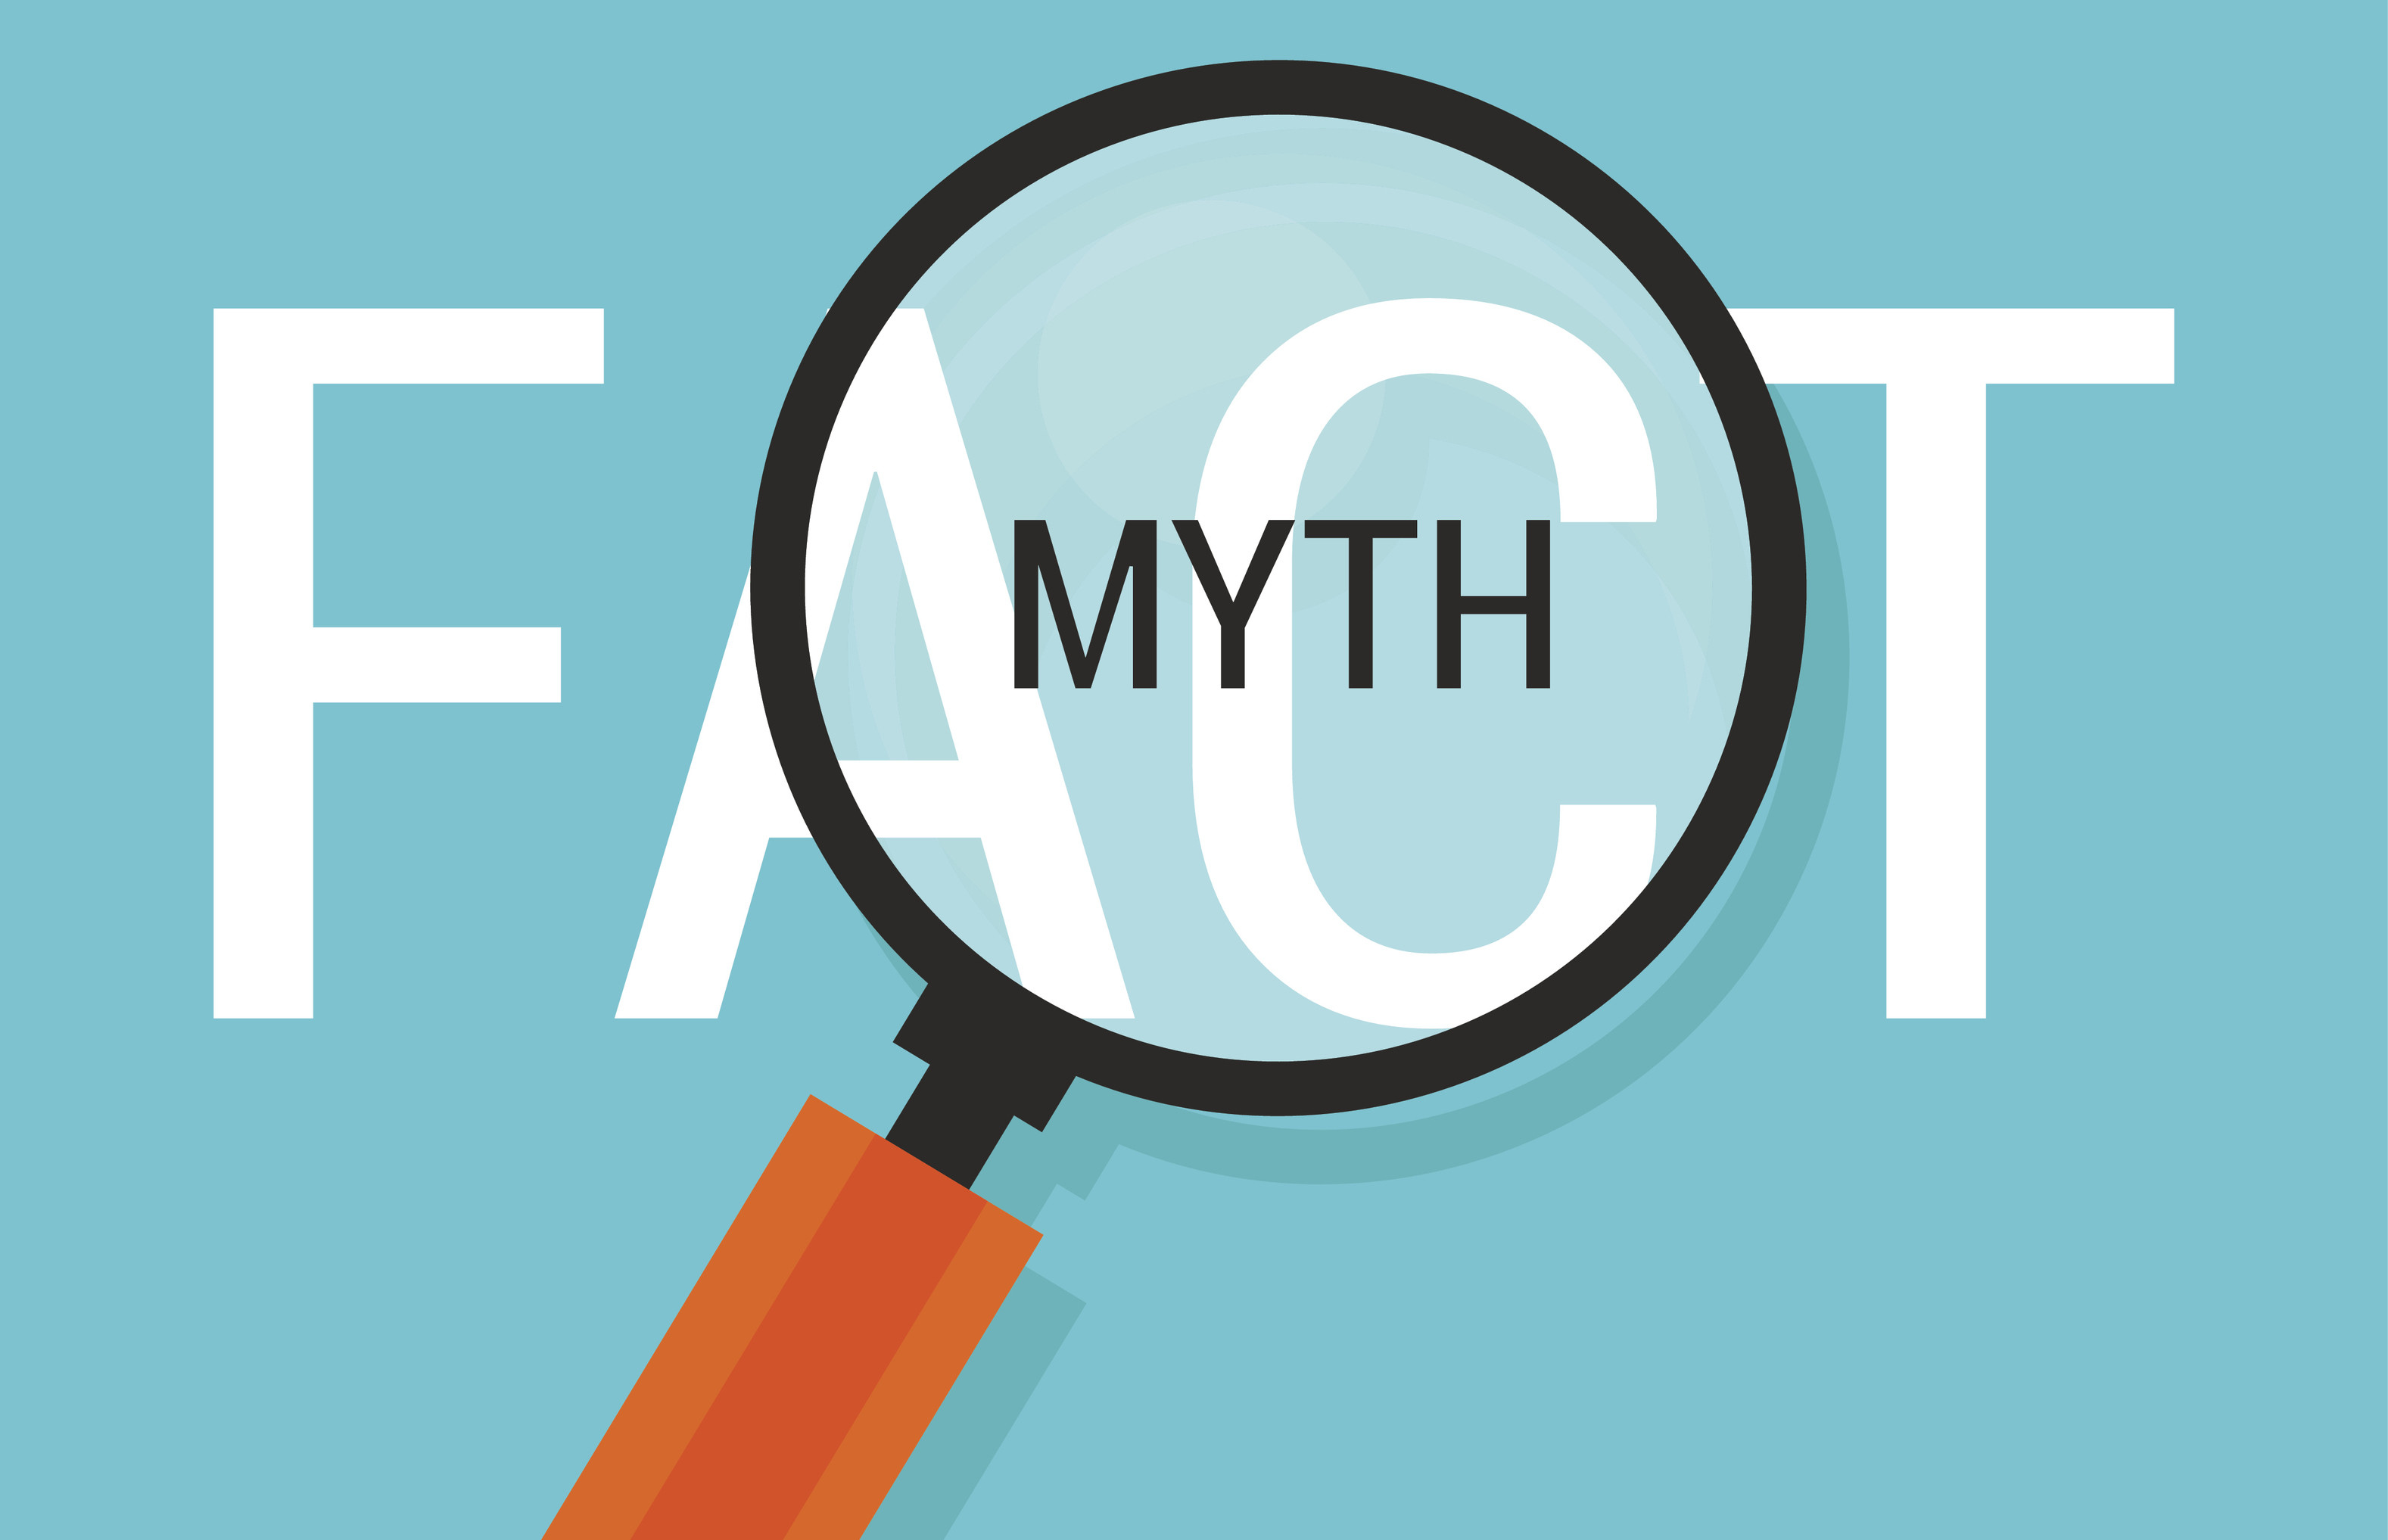 Fact or Fiction The Truth About The Latest Fad Diets and Health Crazes